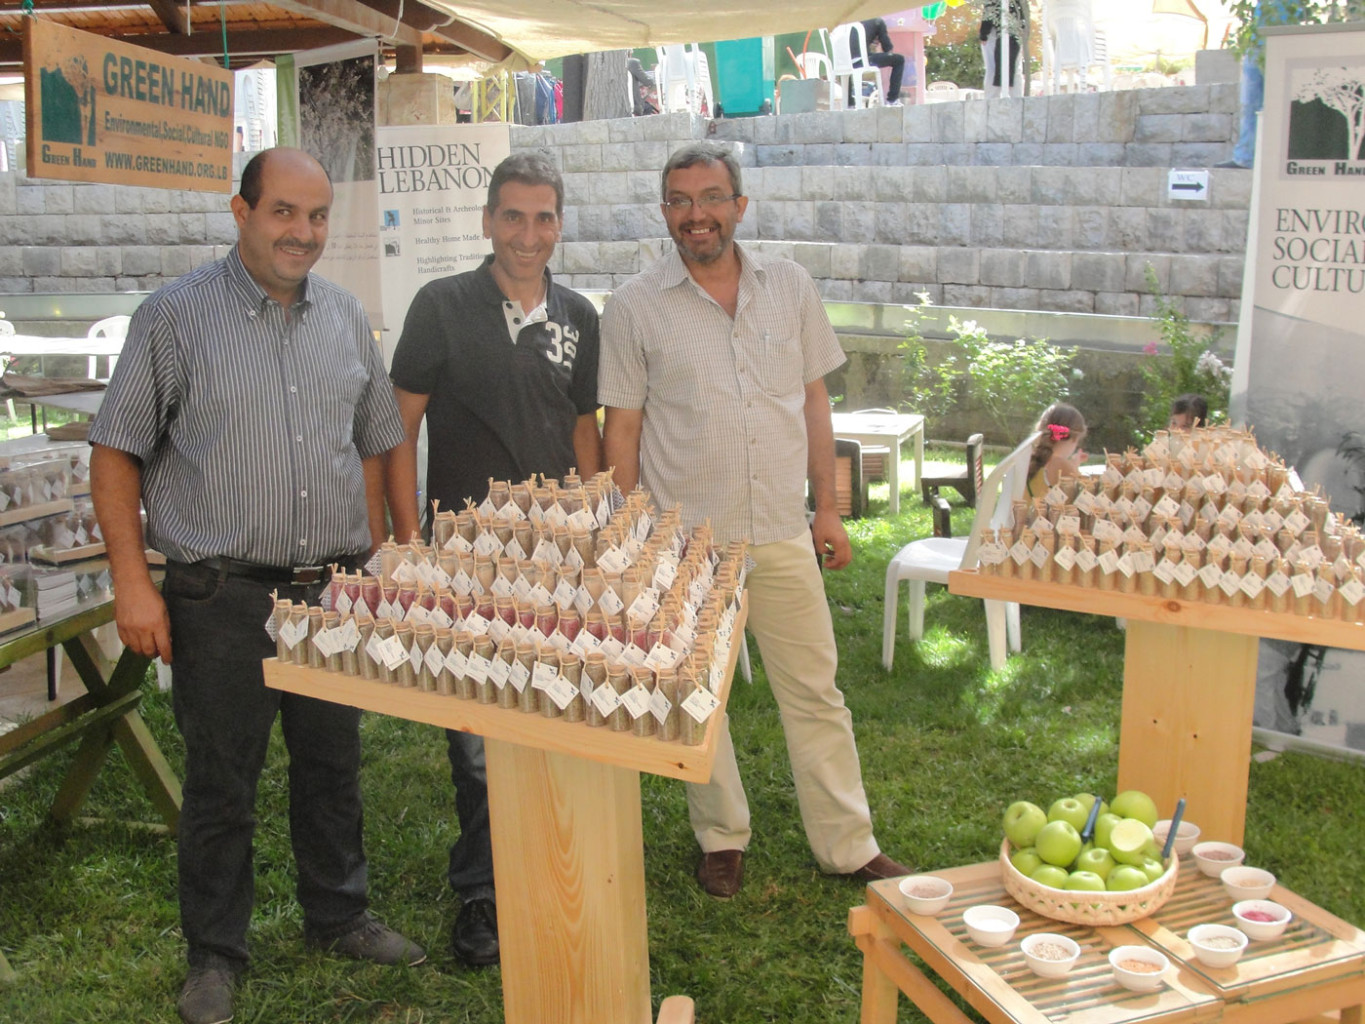 An NGO dedicated to the protection of biodiversity in Lebanon | The Switchers